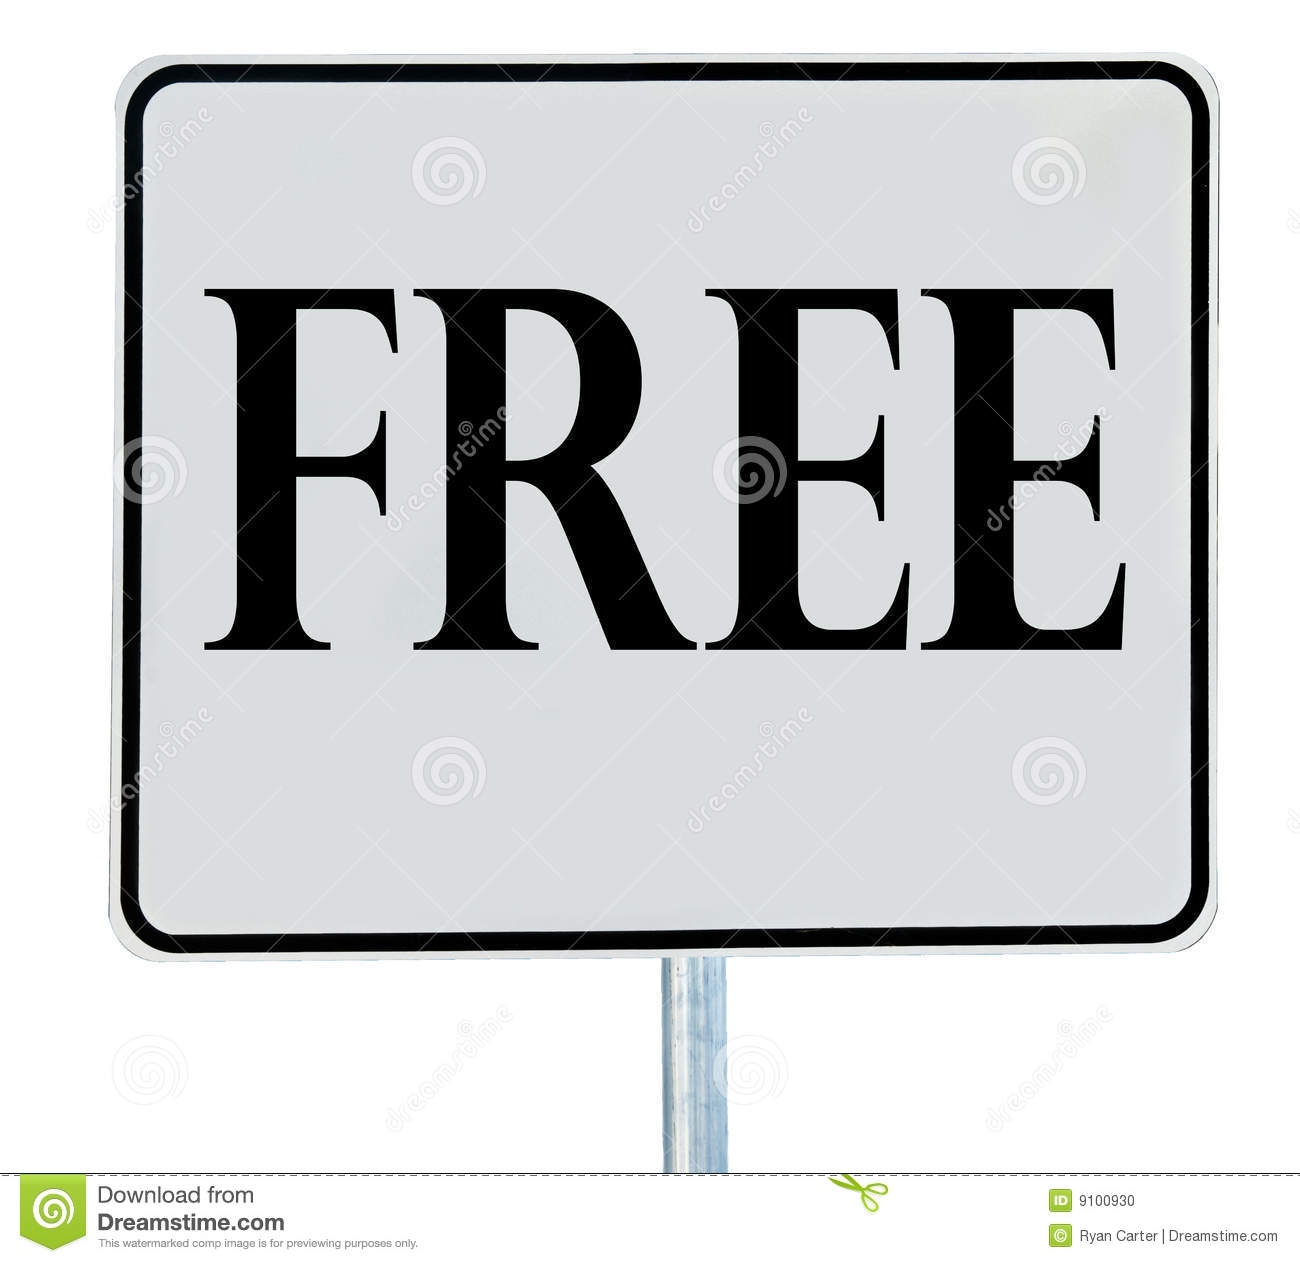 free sign stock photo image 9100930 online shopping clipart free shopping clipart images